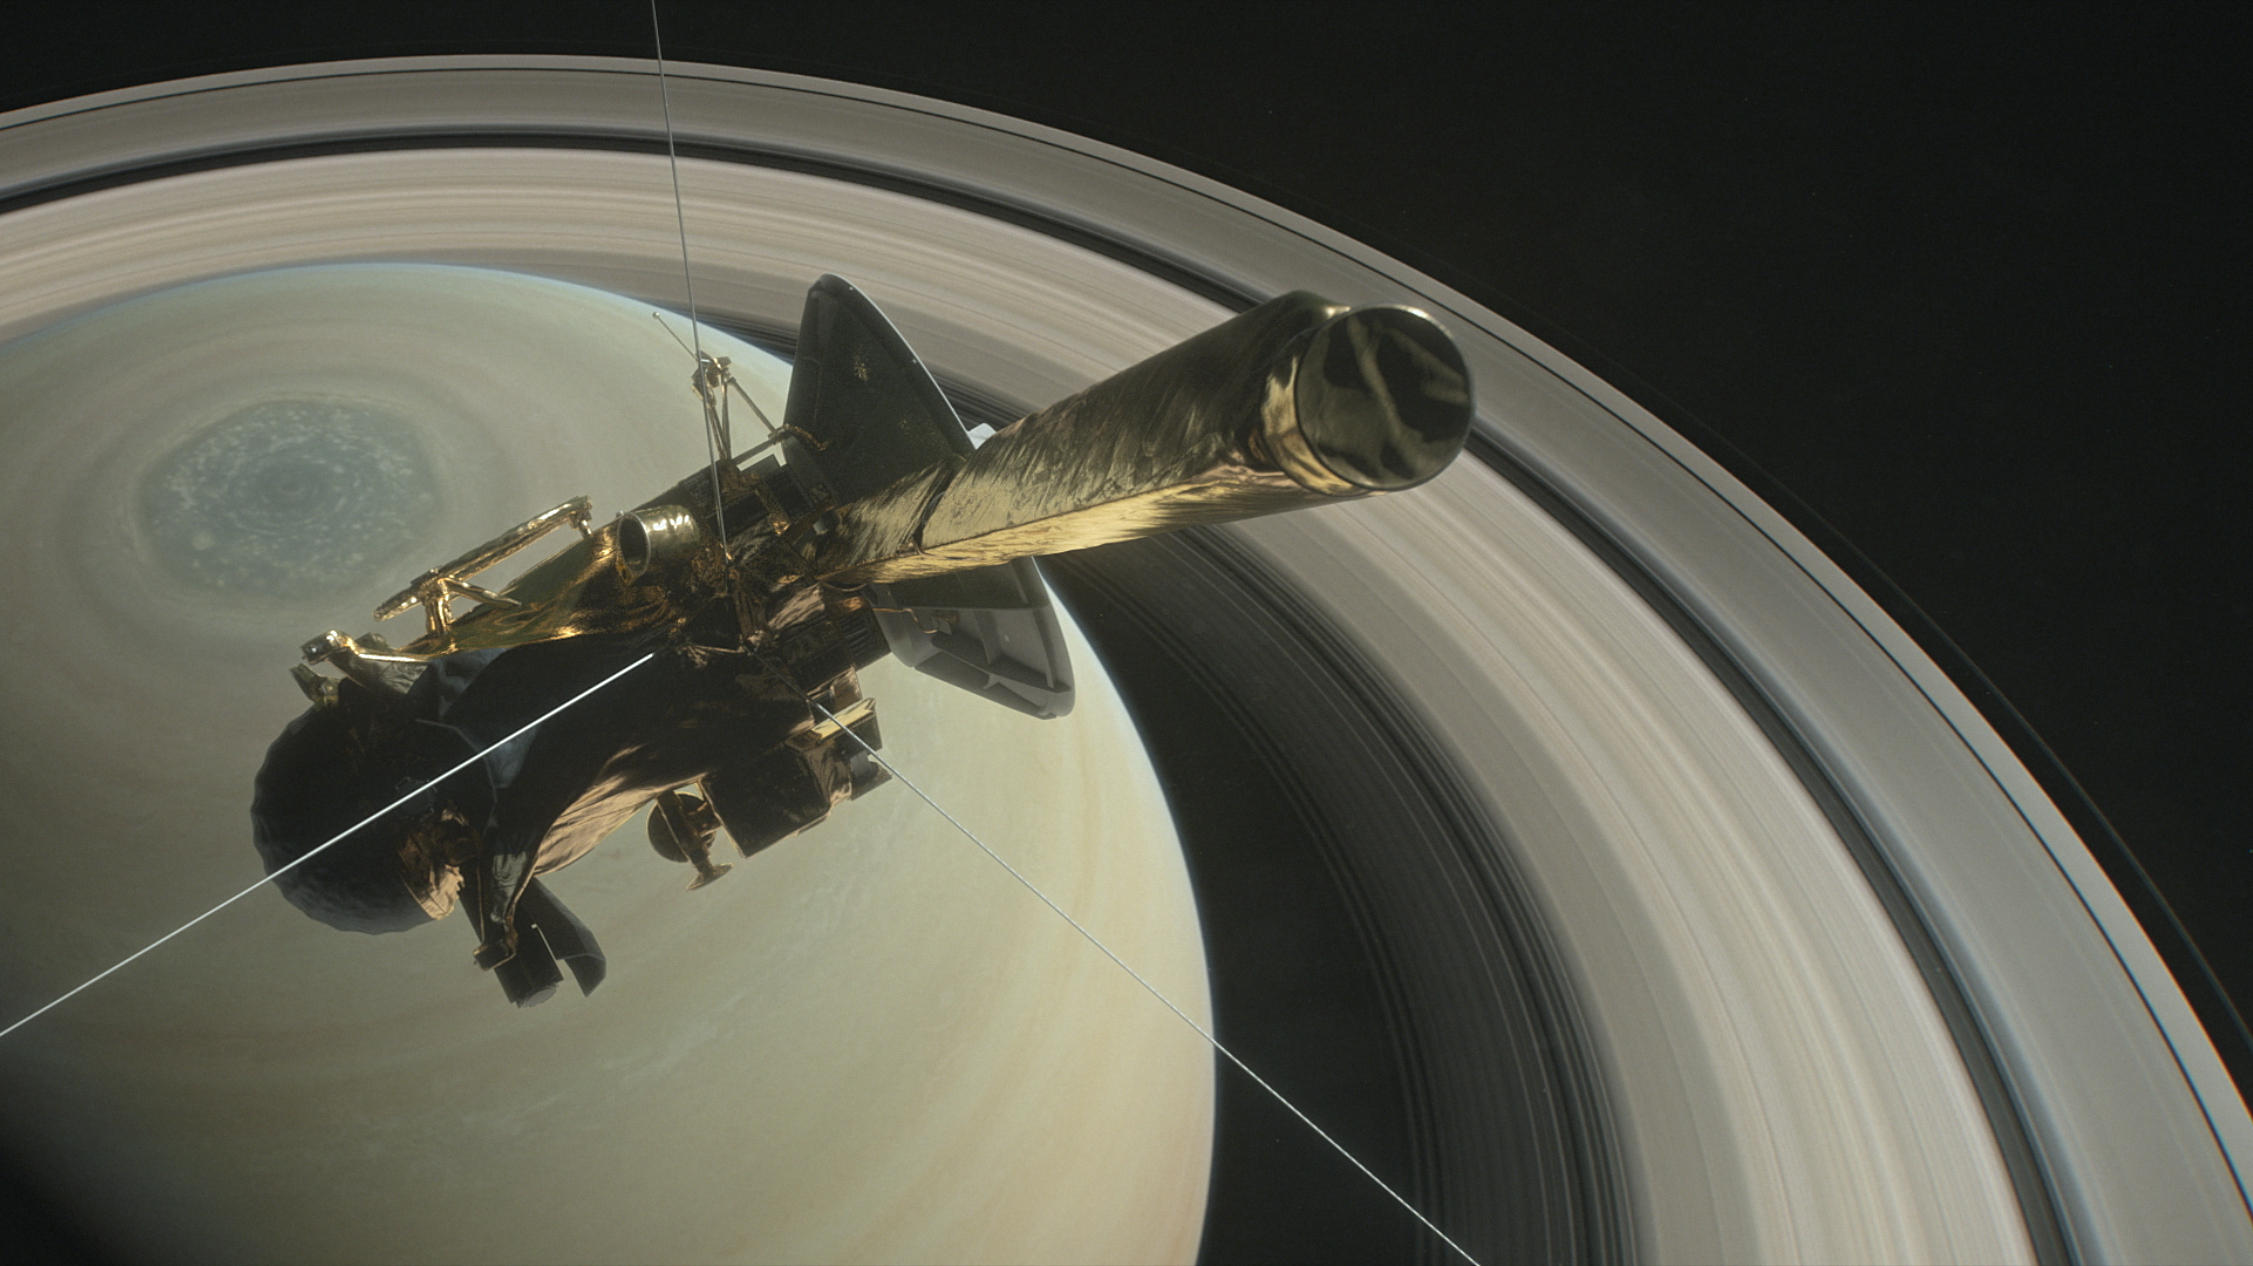 Cassini takes a final plunge into Saturn, ending its 20-year mission